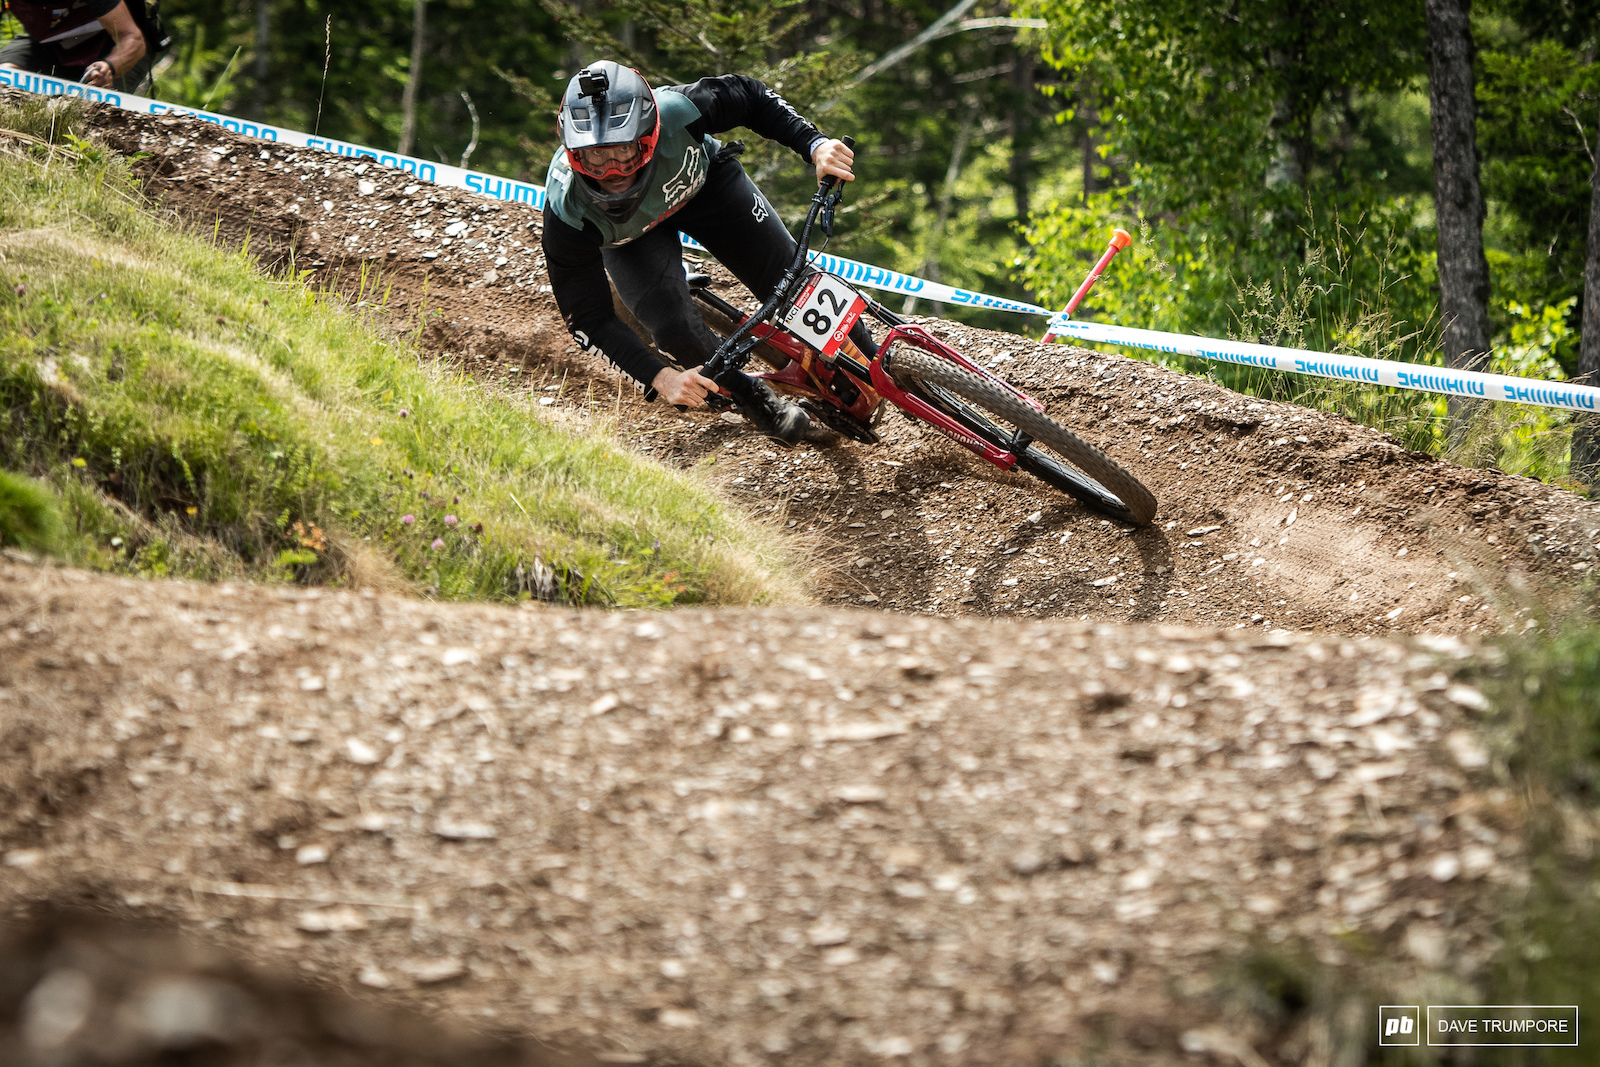 With most of the Union Devinci team sidelined with injuries EWS specialist Keegan Wright has stepped in for some DH duties this week.